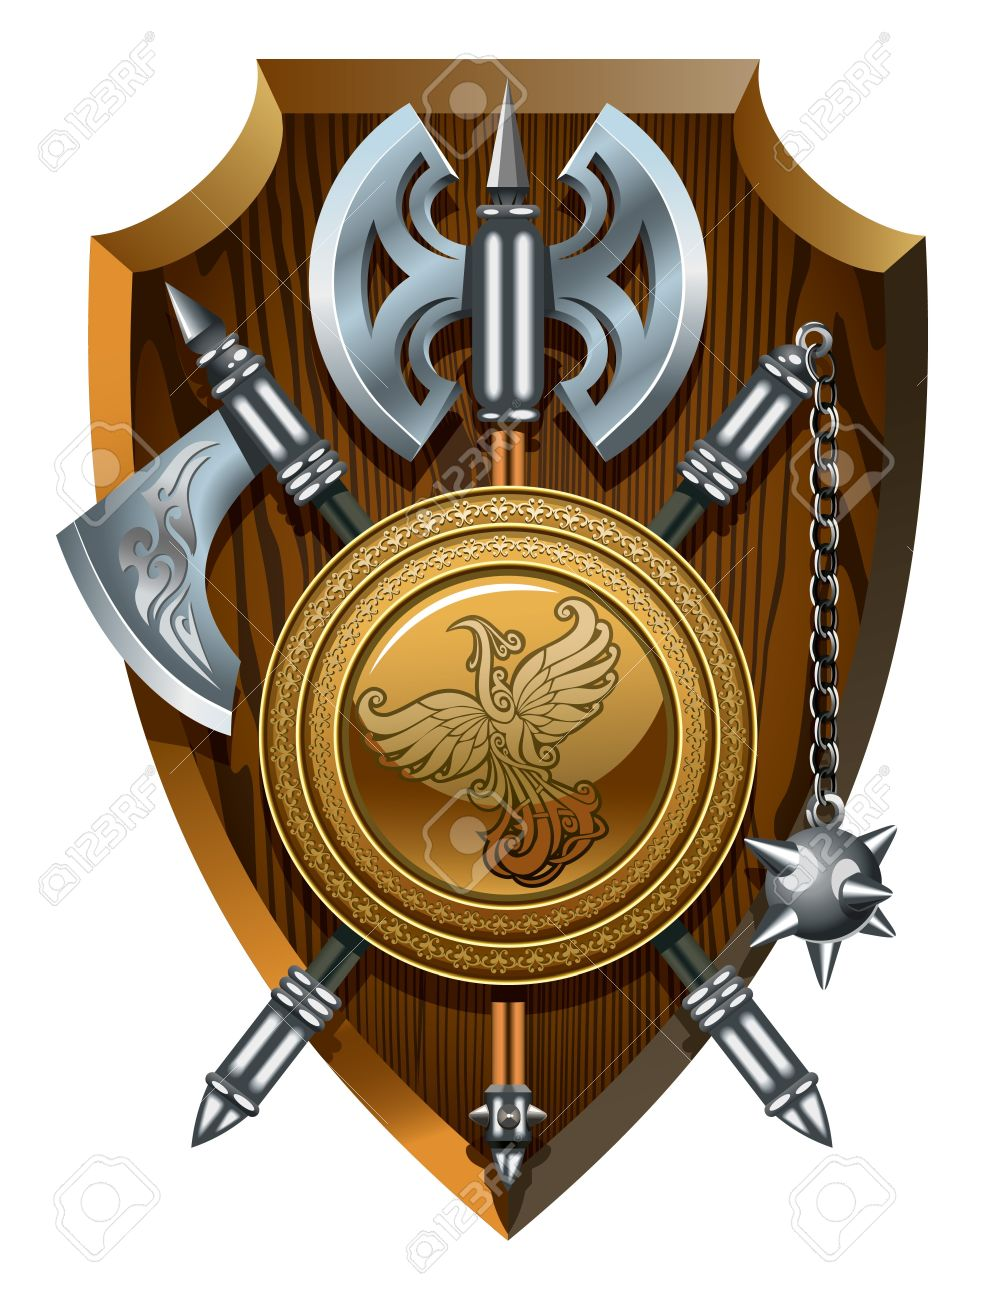 Coat of arms  labrys, axe, Morgenstern and shield, Stock Vector - 13831672